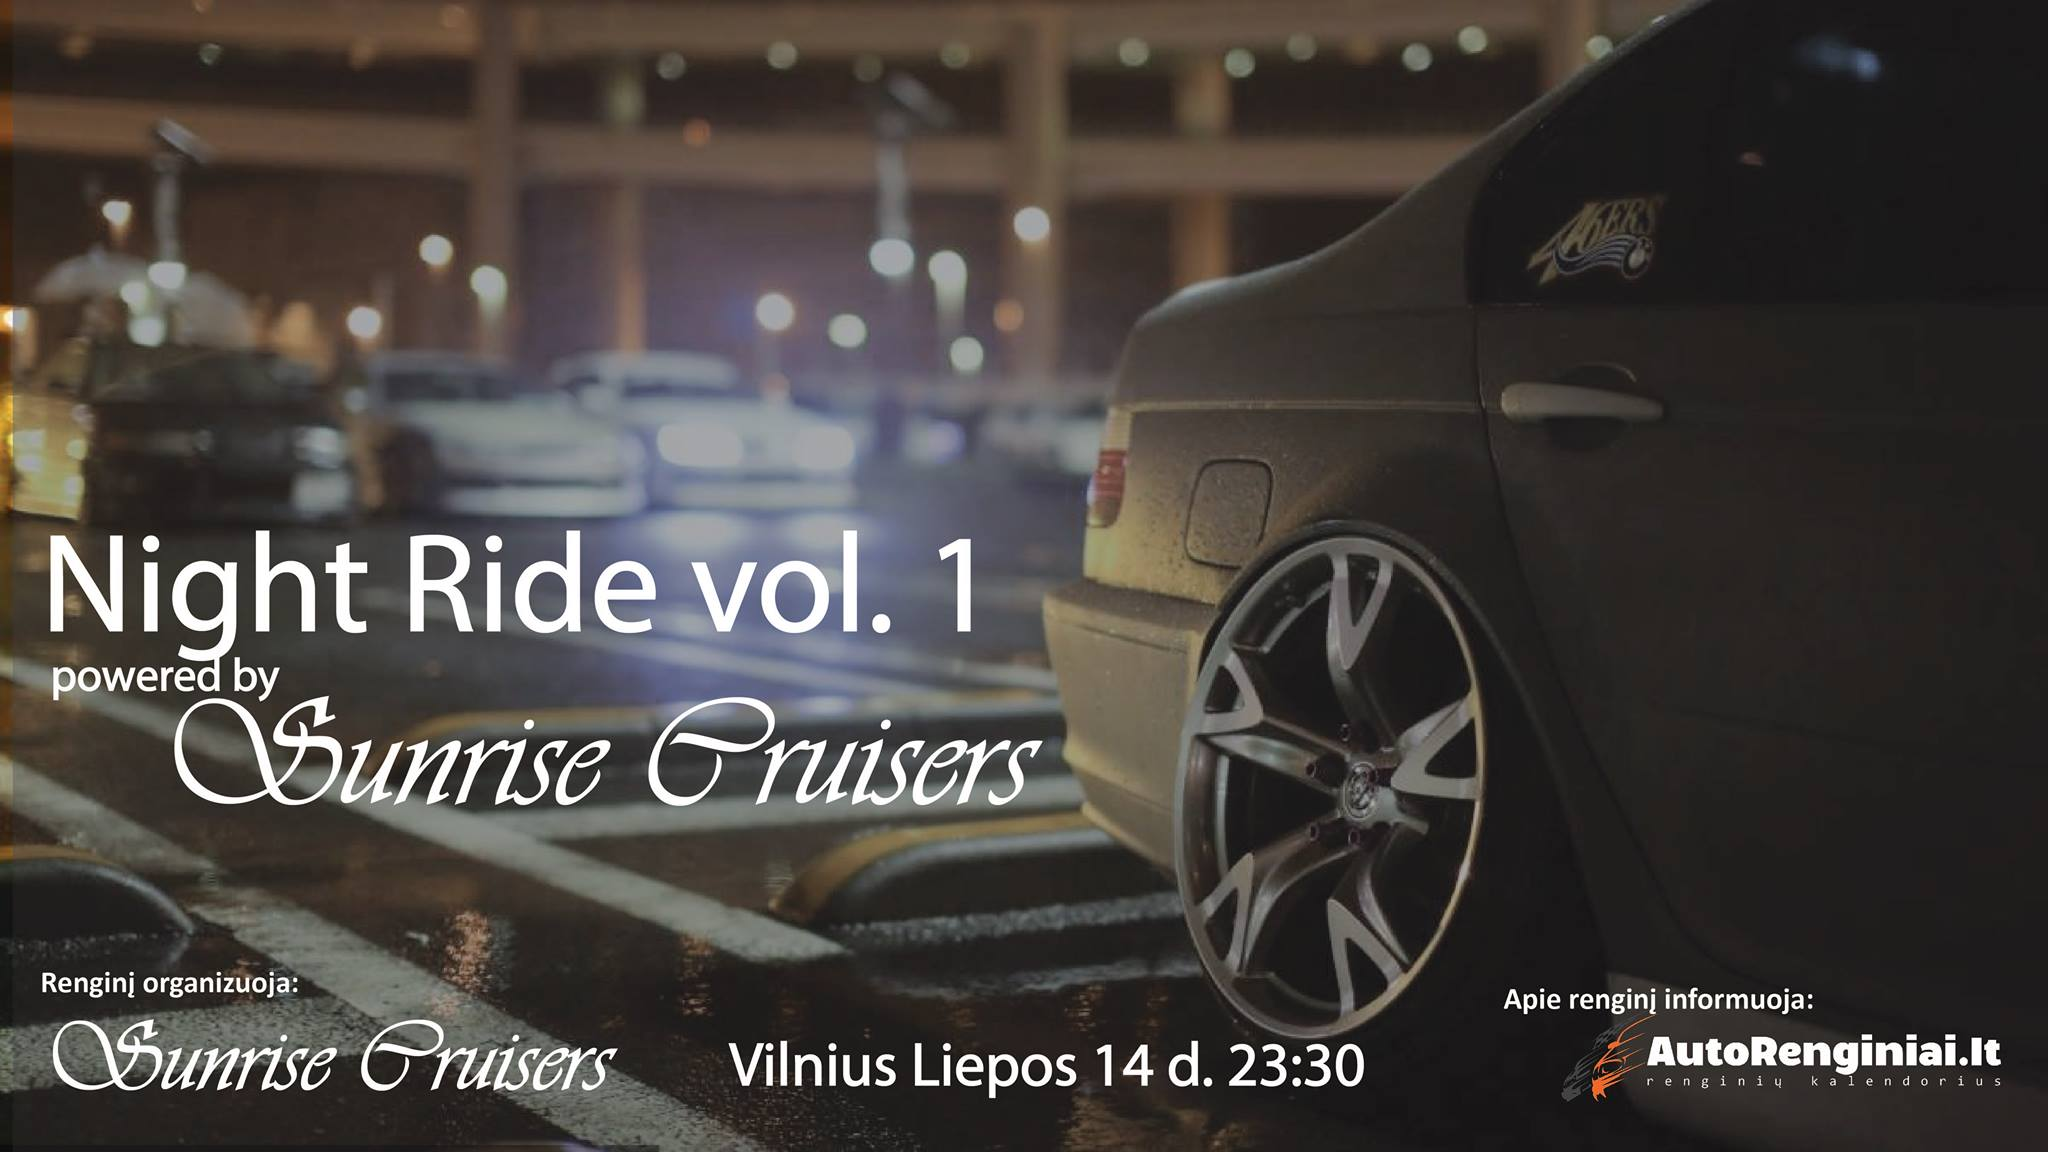 Night Ride vol. 1 (powered by Sunrise Cruisers)